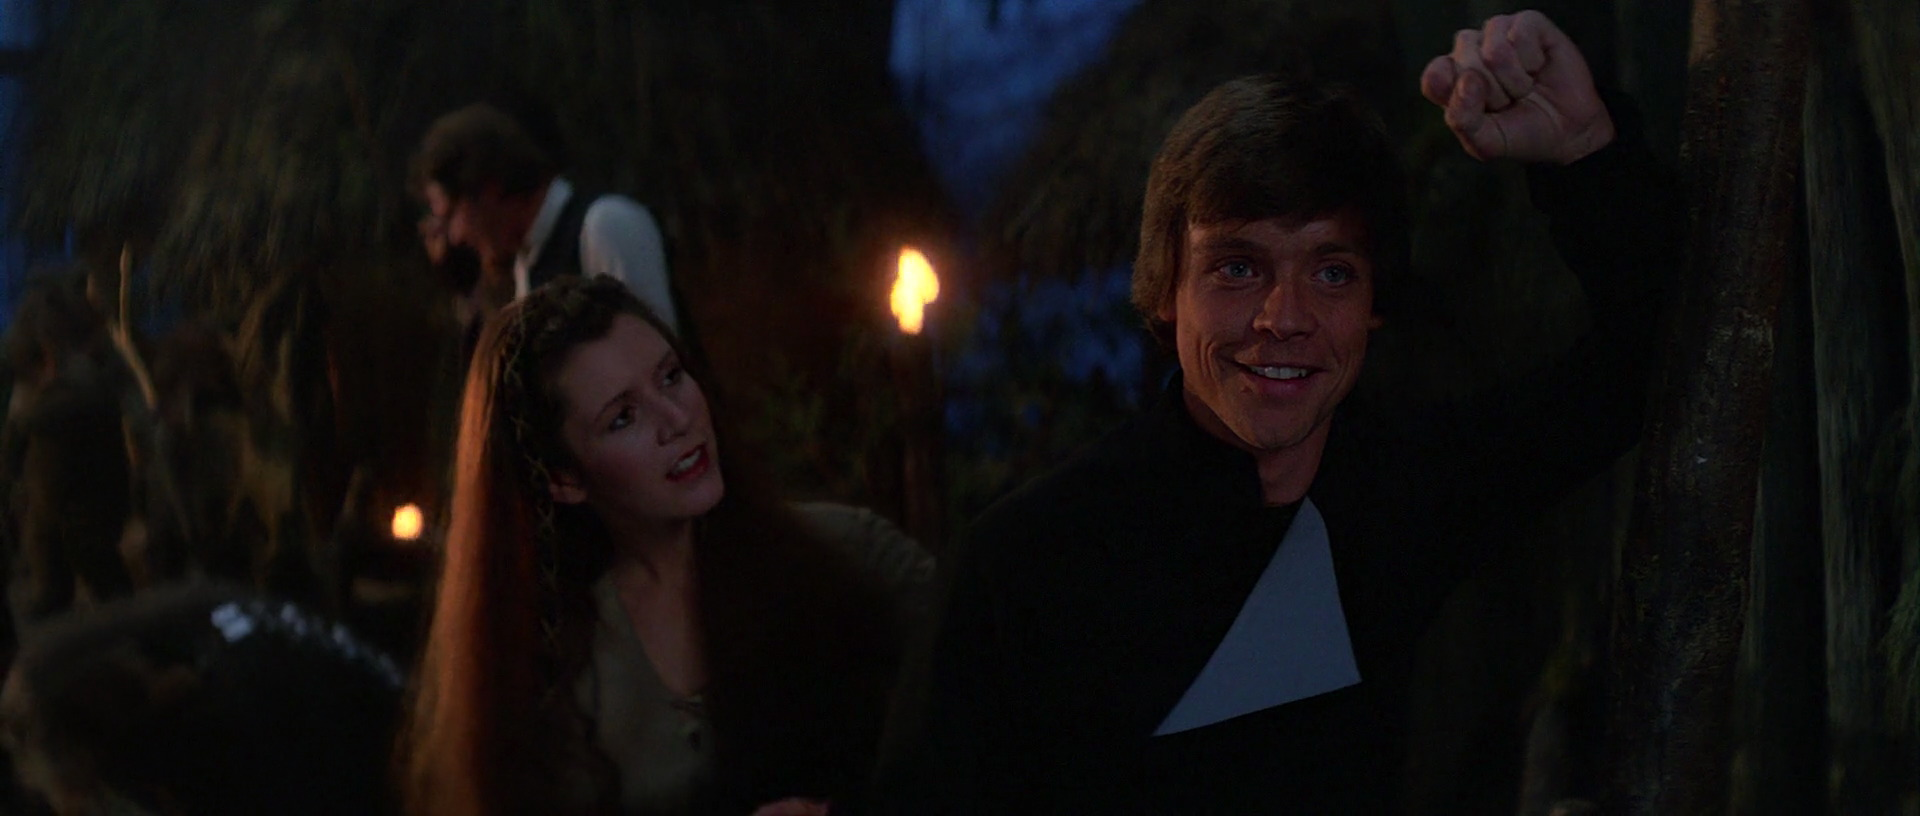 Here's Why Luke Skywalker Has Not Turned To The Dark Side ...